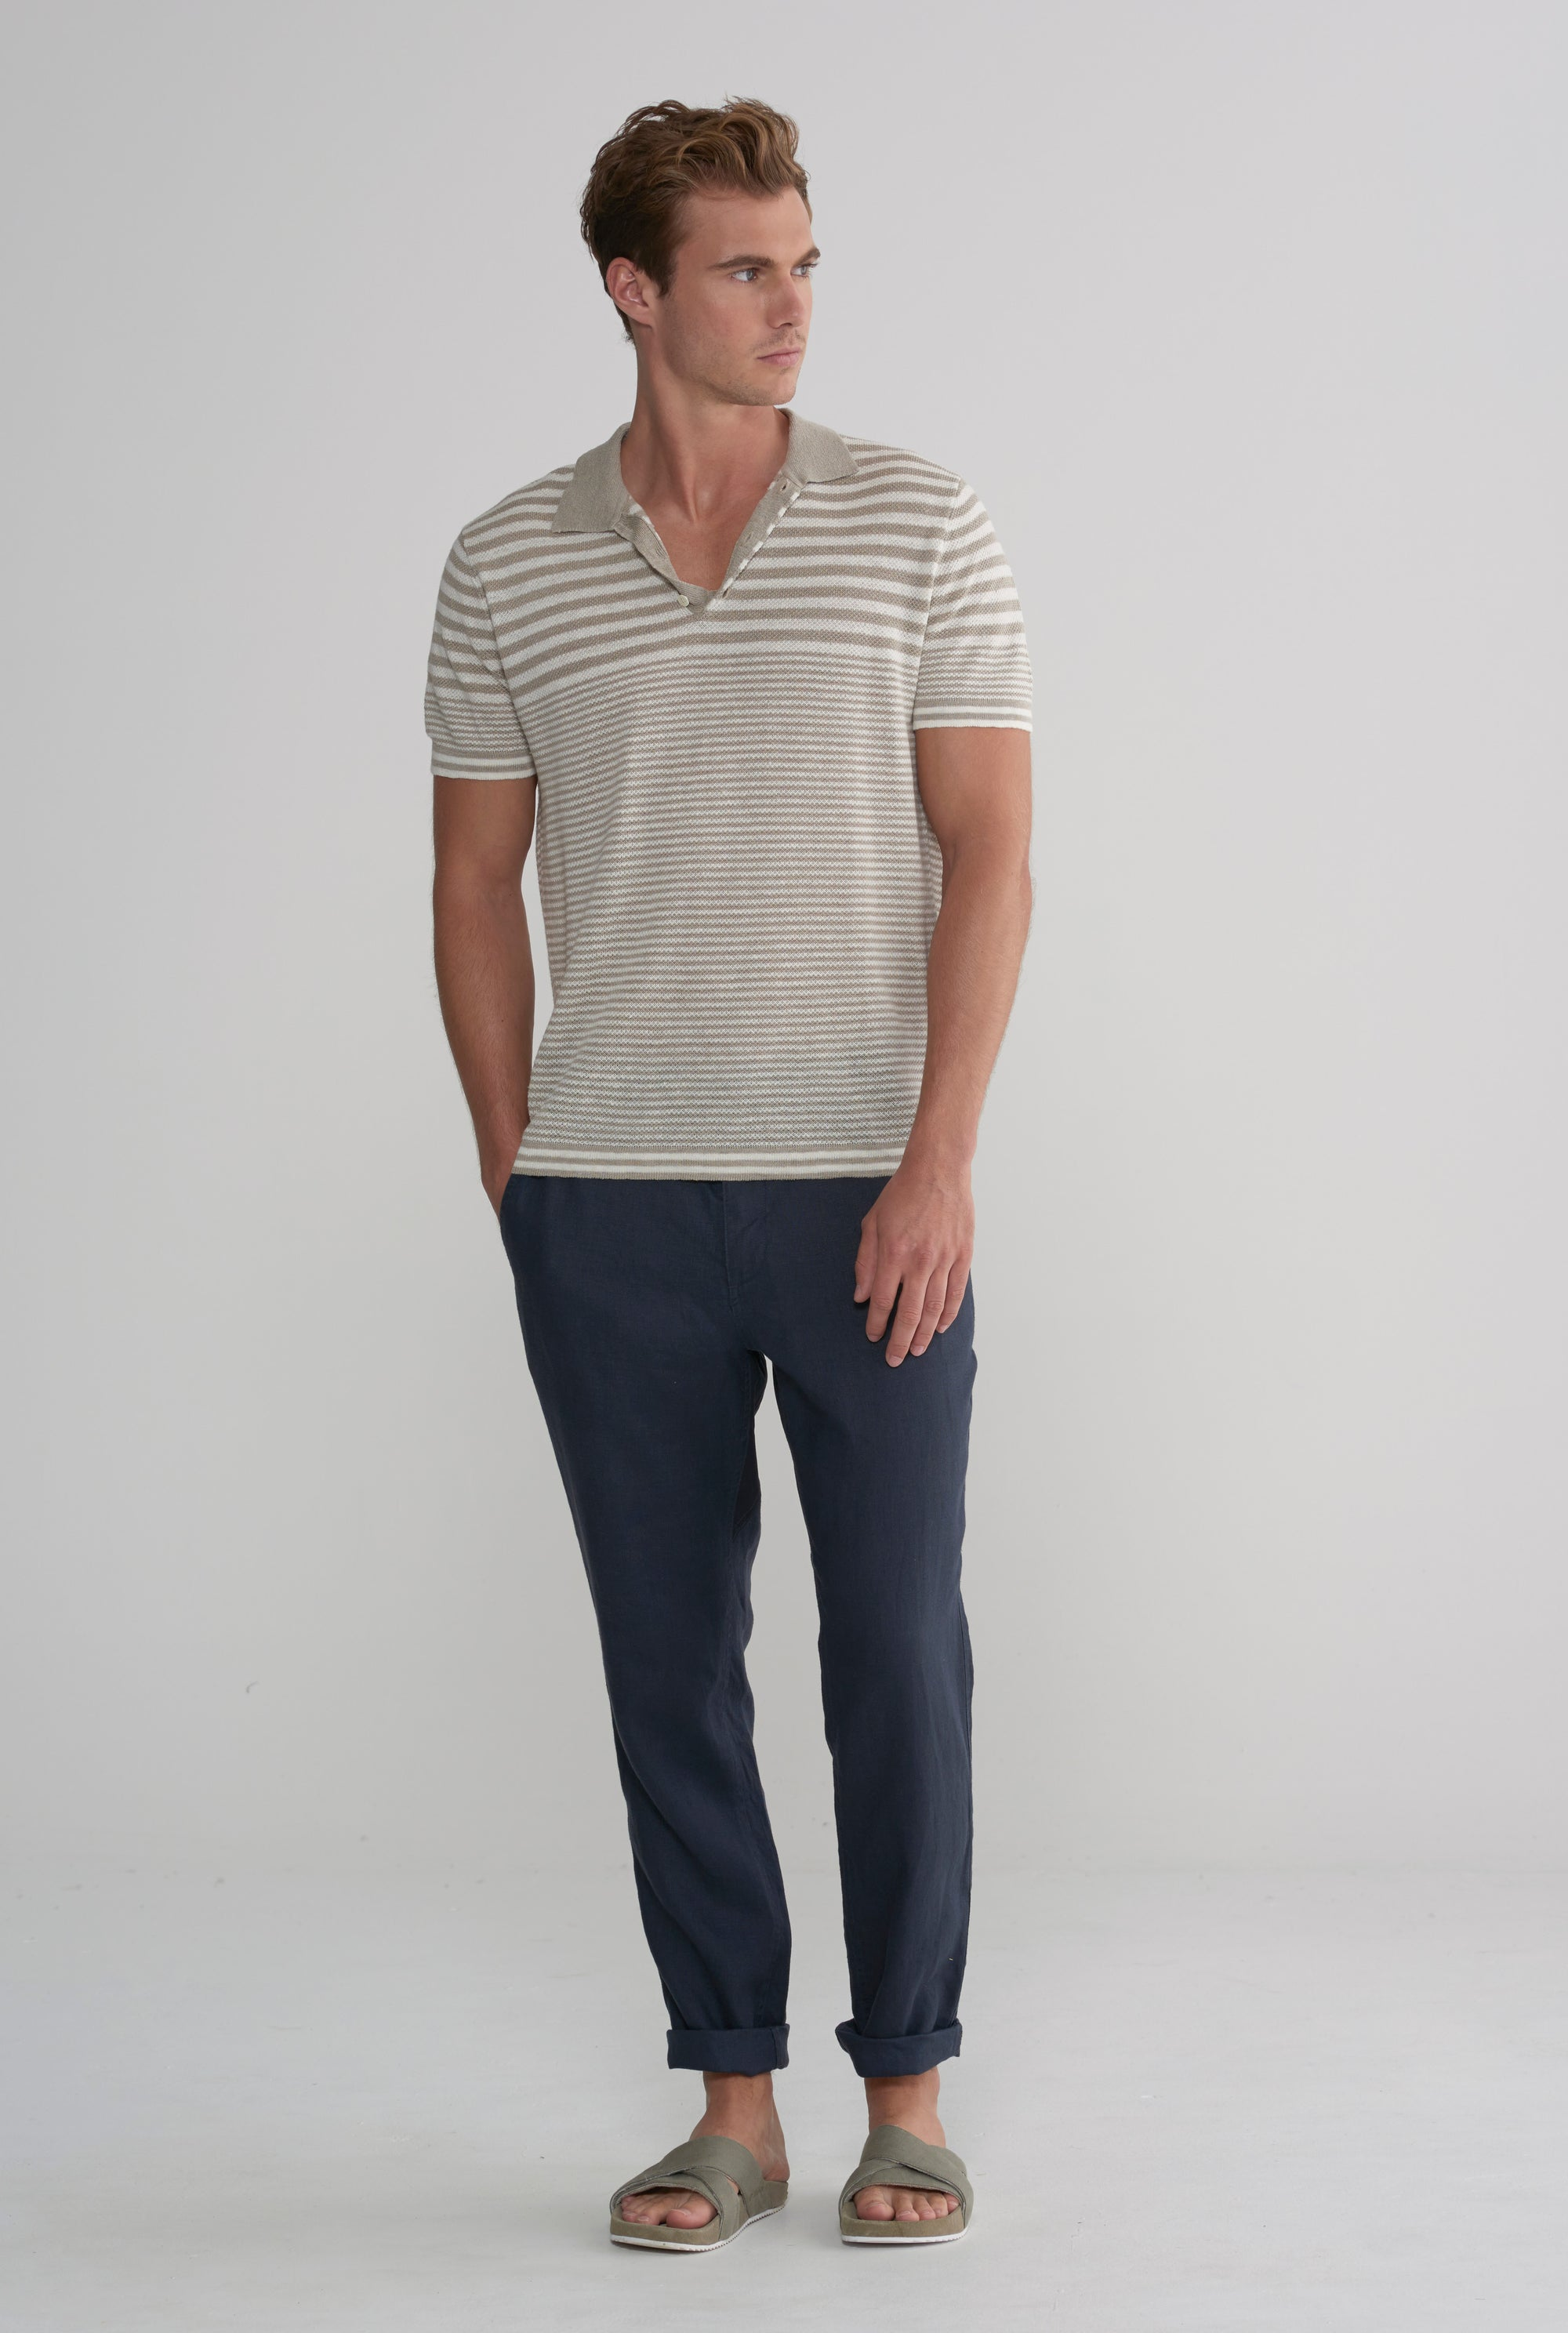 Knitted Polo - Taupe/Ivory Stripe